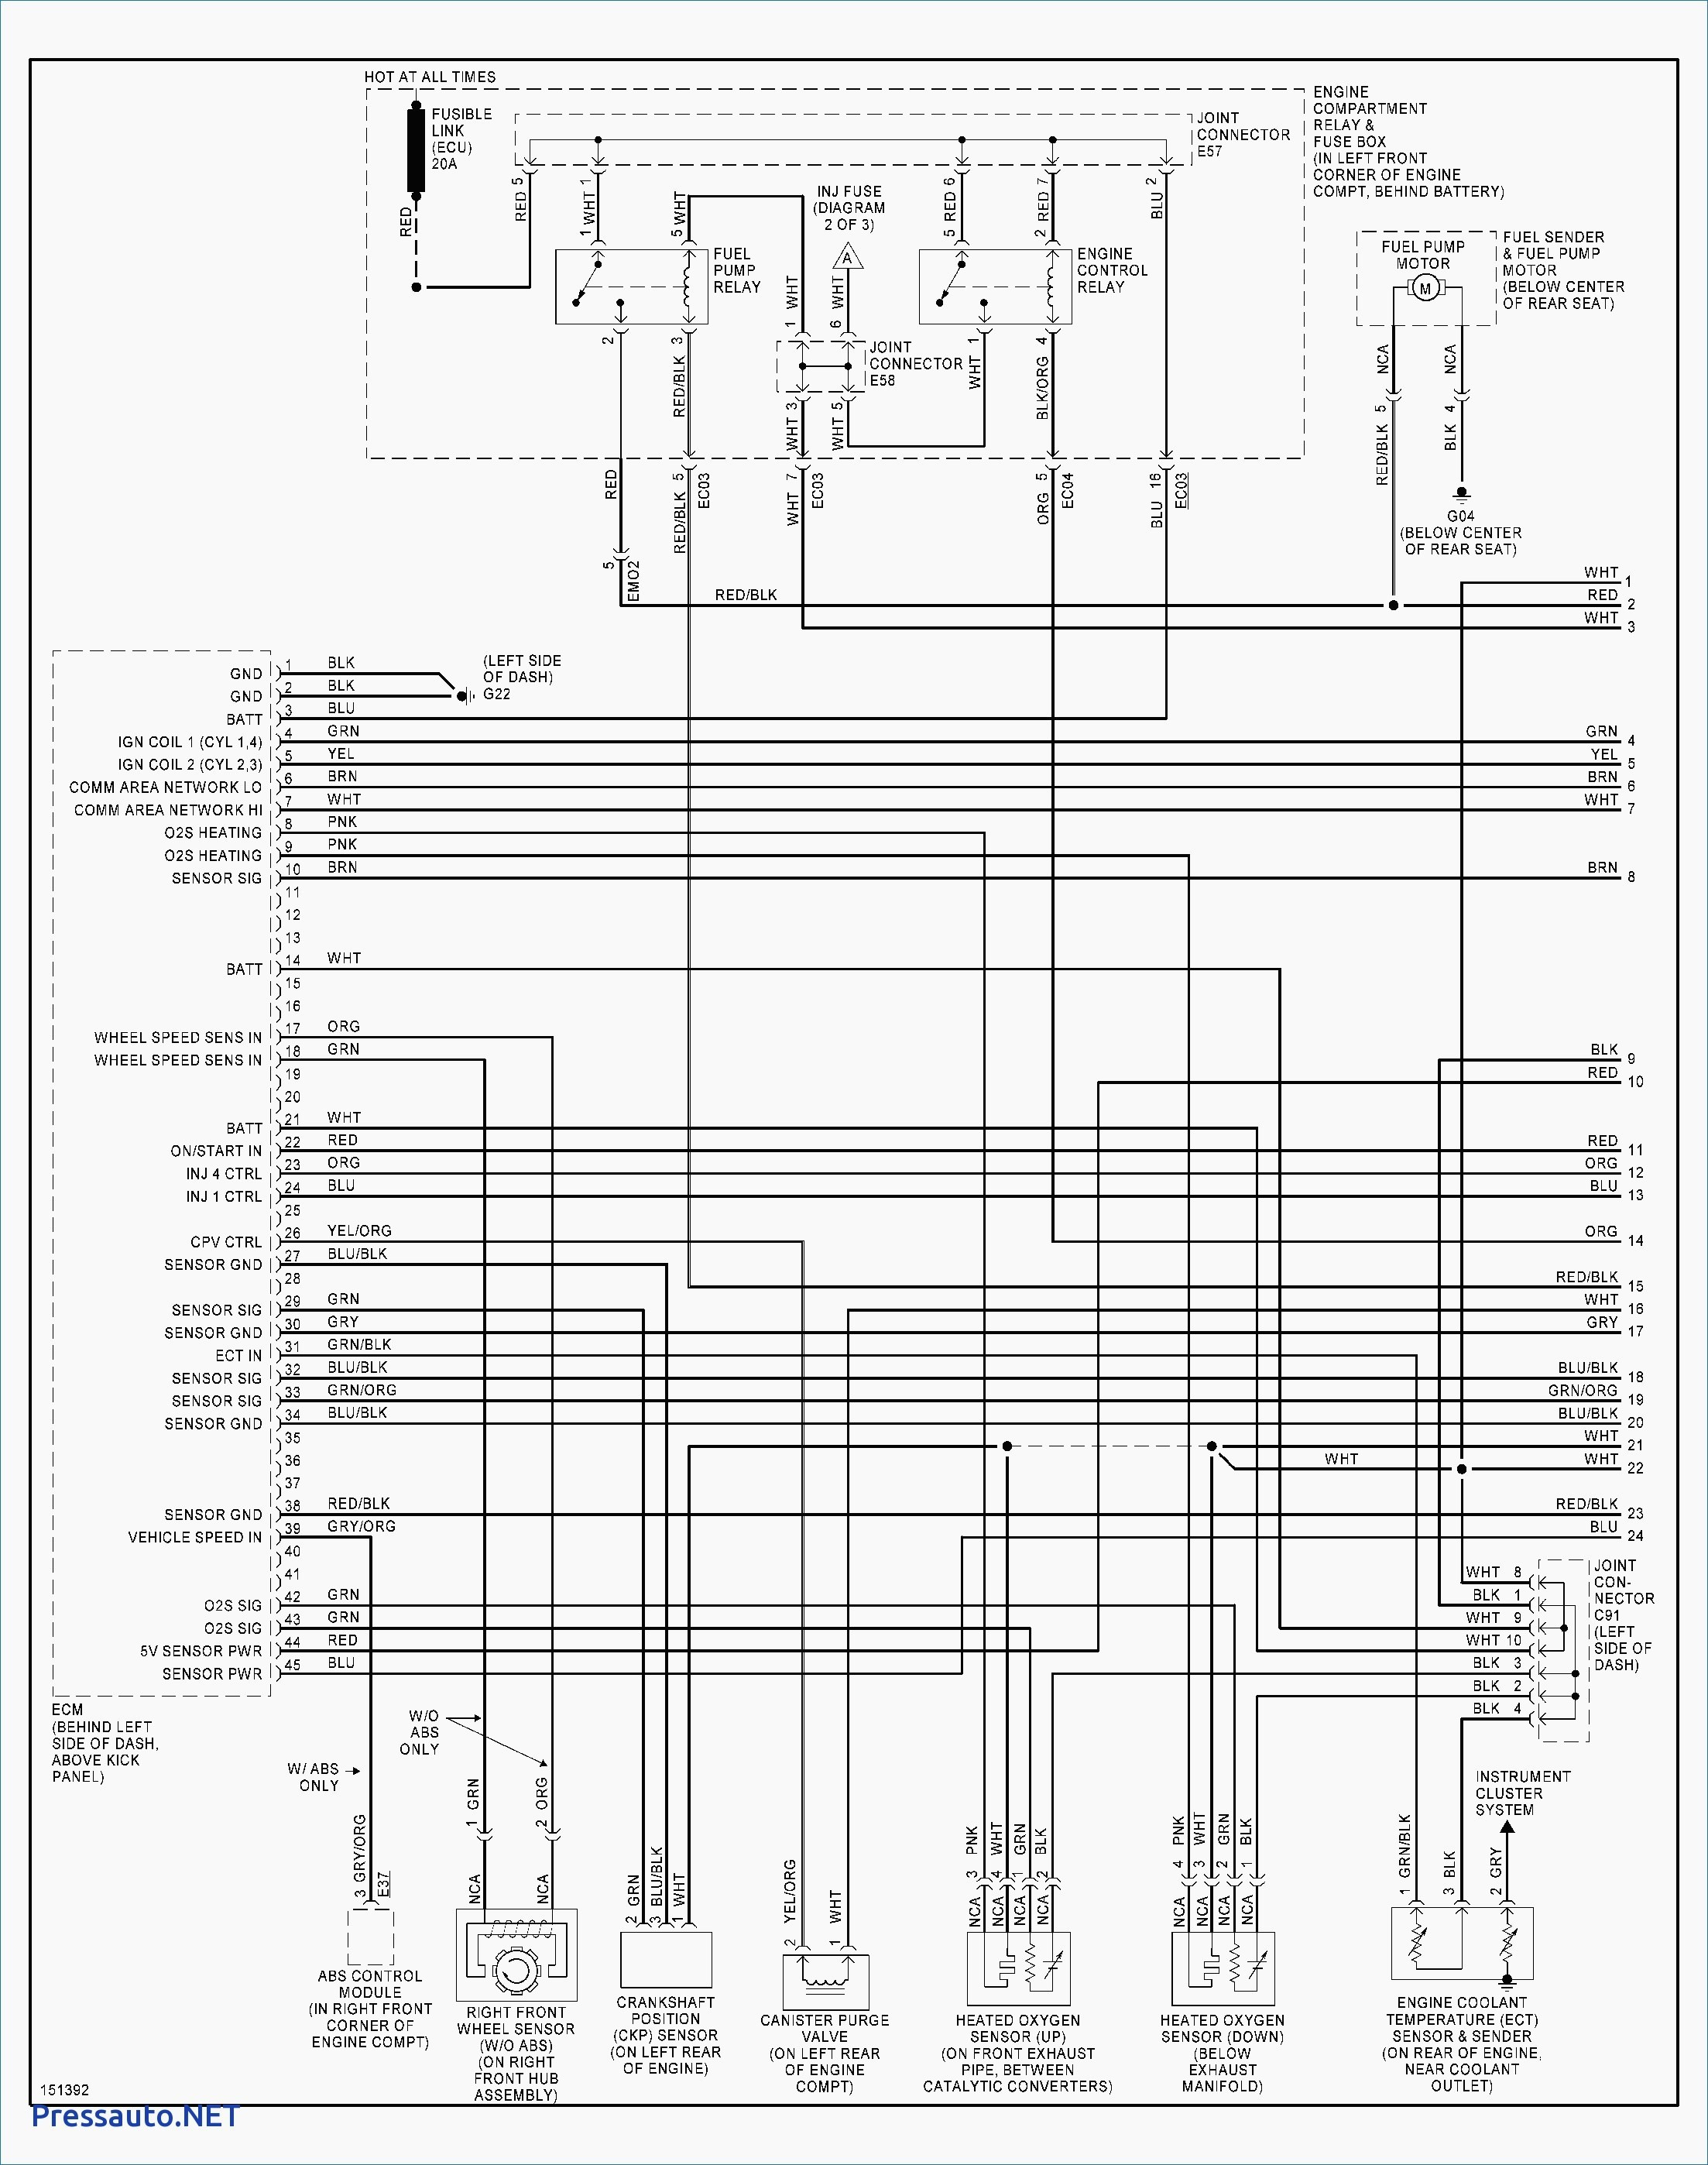 2004 hyundai santa fe car stereo radio wiring diagram 2000 eclipse trailer best site harness